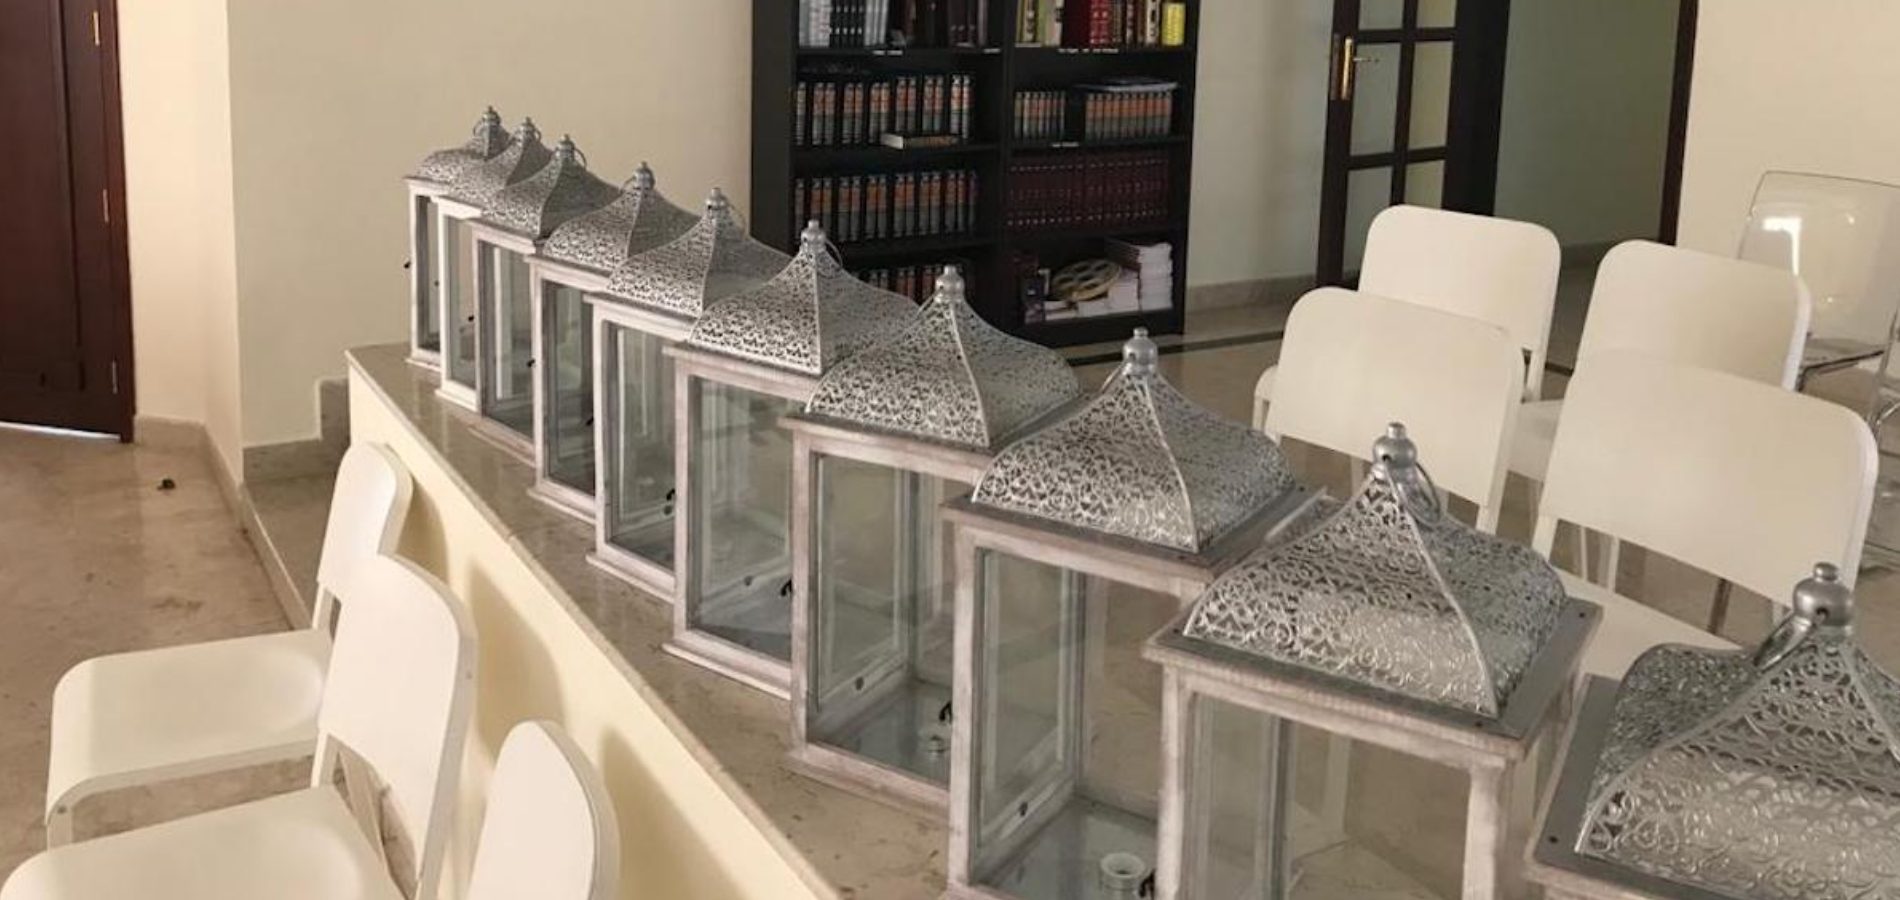 Inside Dubai's Jewish Community & Other Orthodox Jews in the News